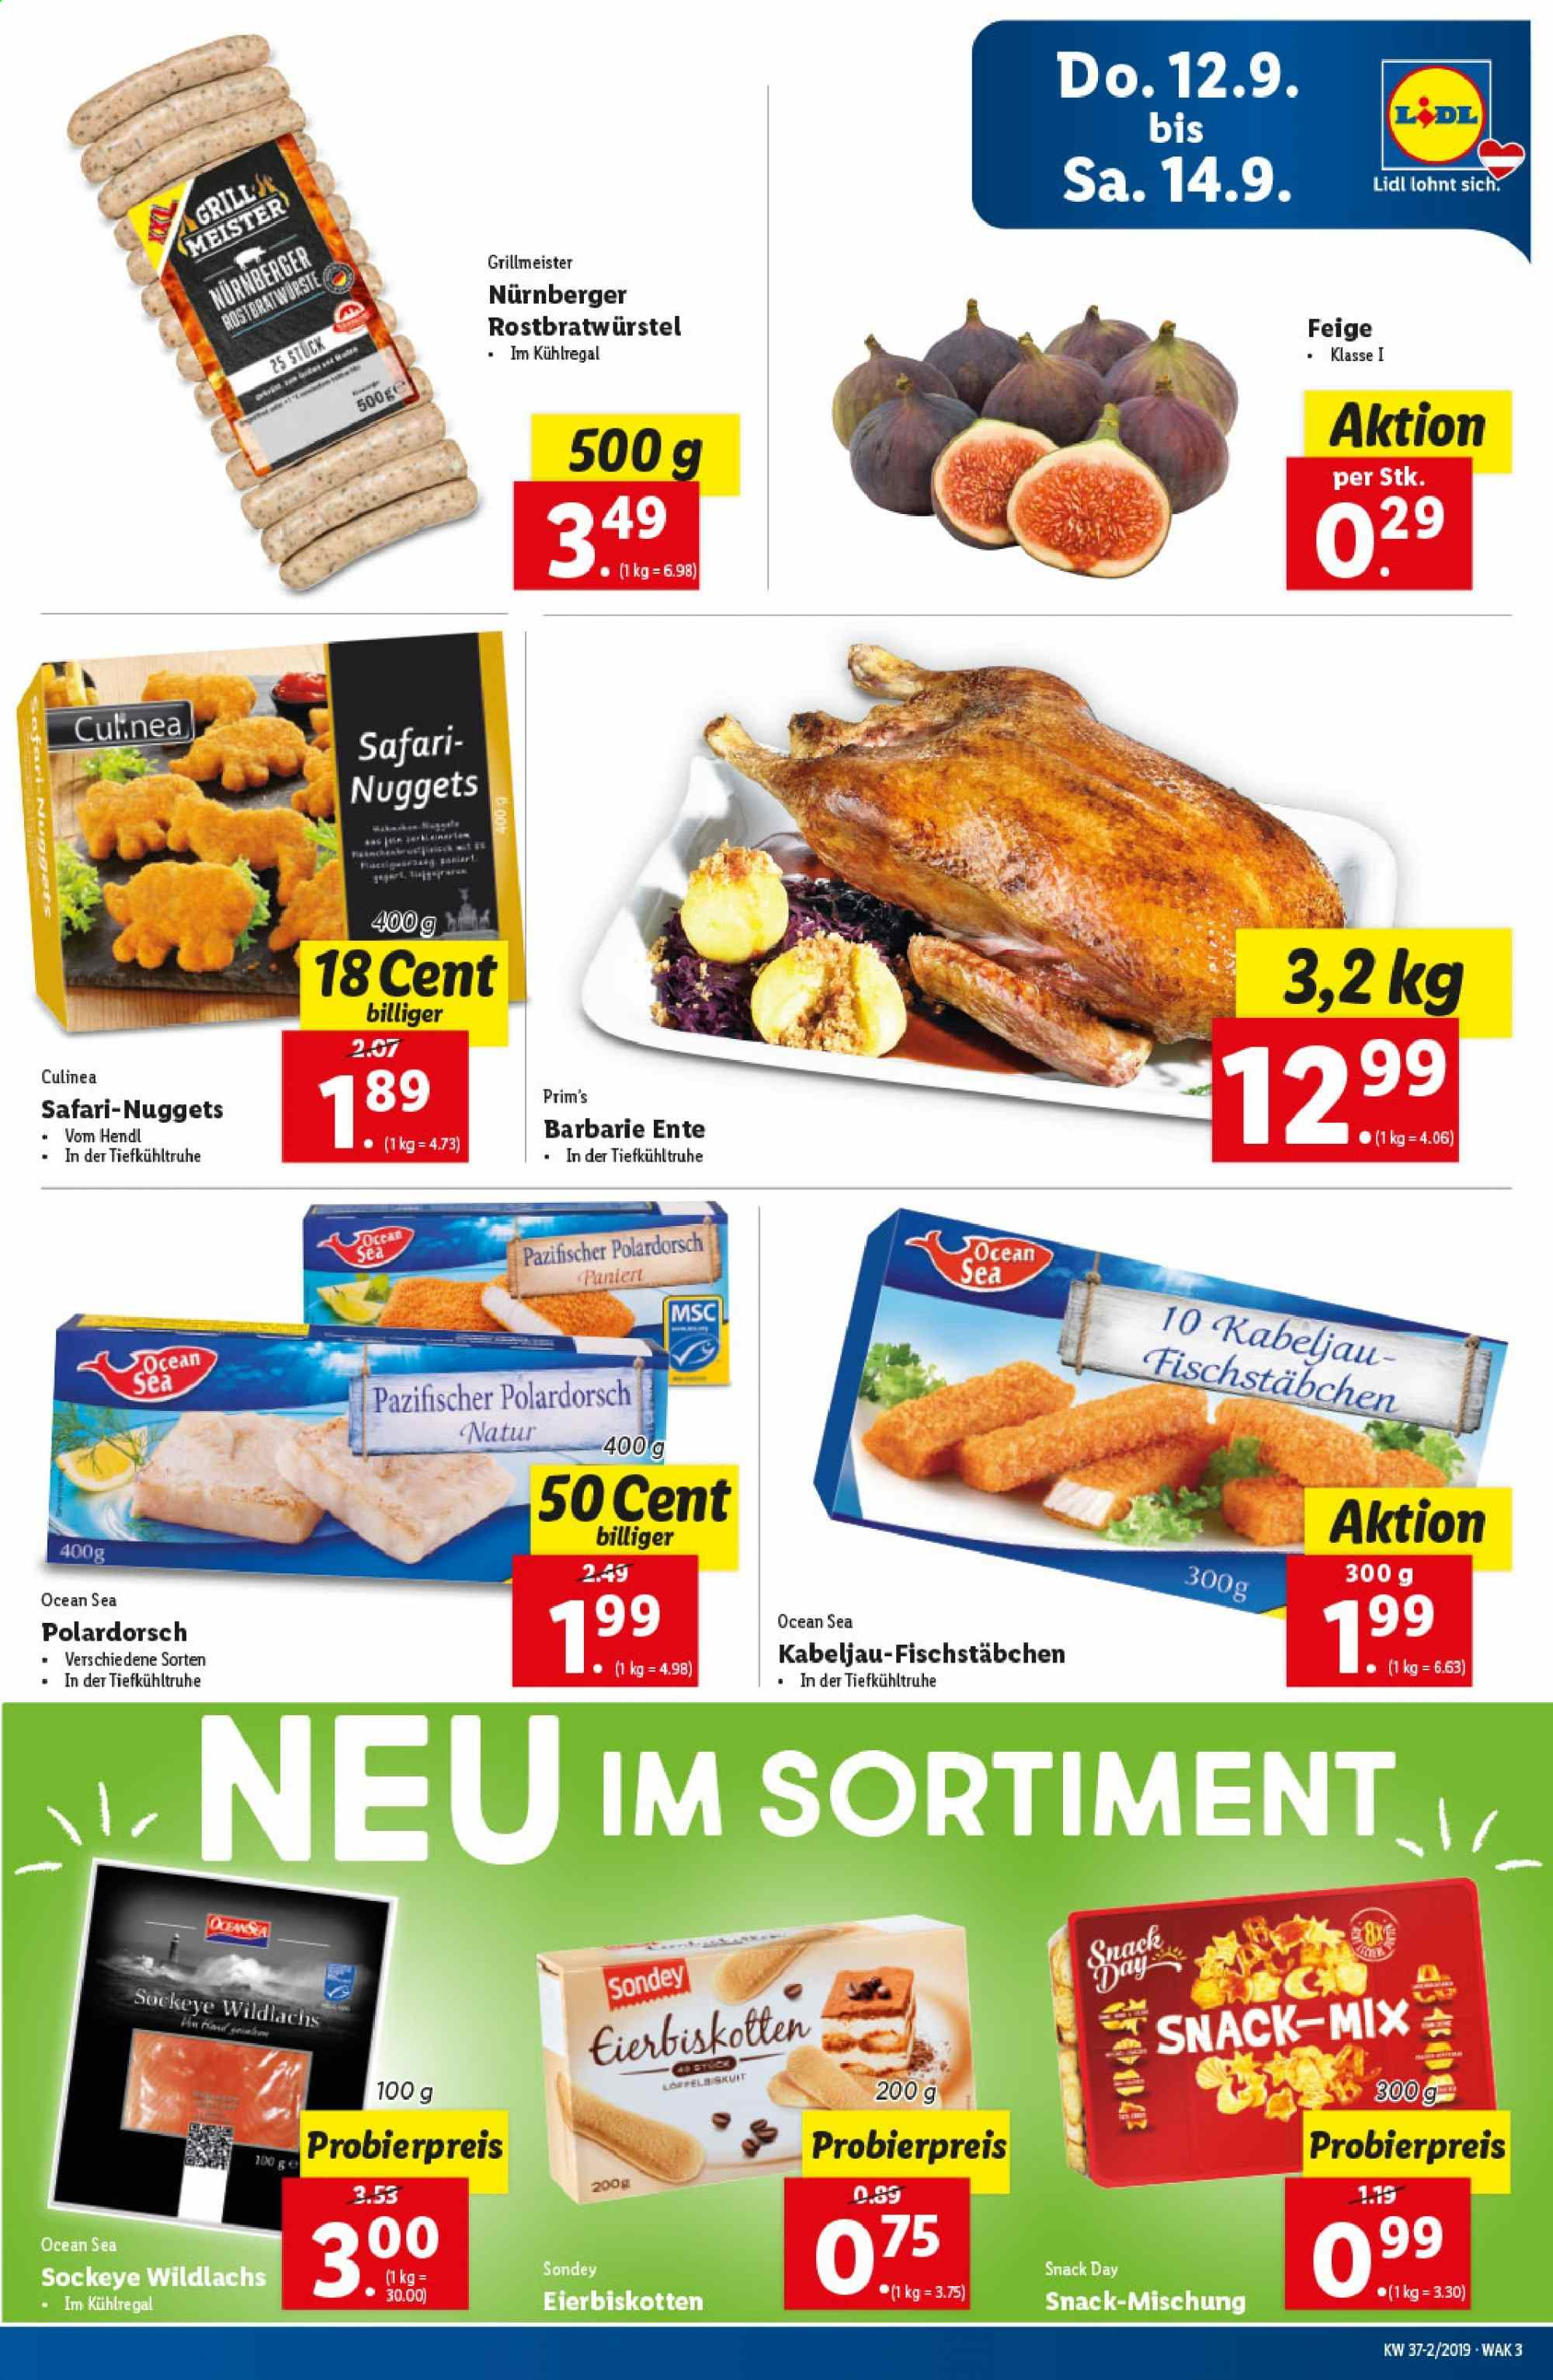 Angebote Lidl - 12.9.2019 - 18.9.2019. Seite 3.